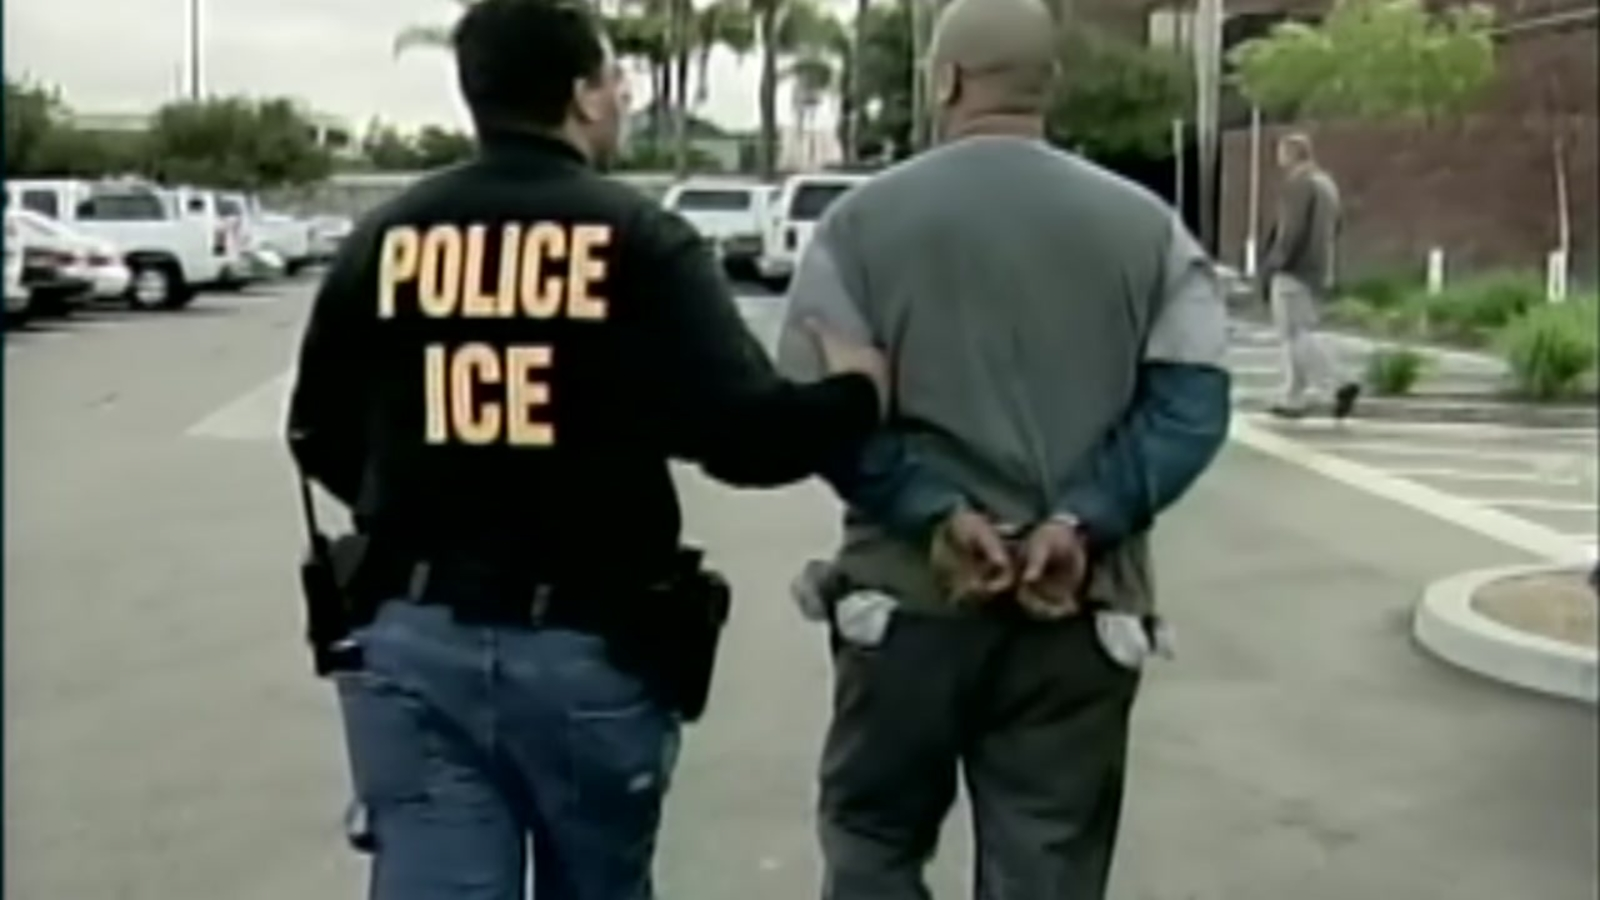 Gov. Newsom, Mayor Breed respond to proposed ICE Raids in SF, other major cities